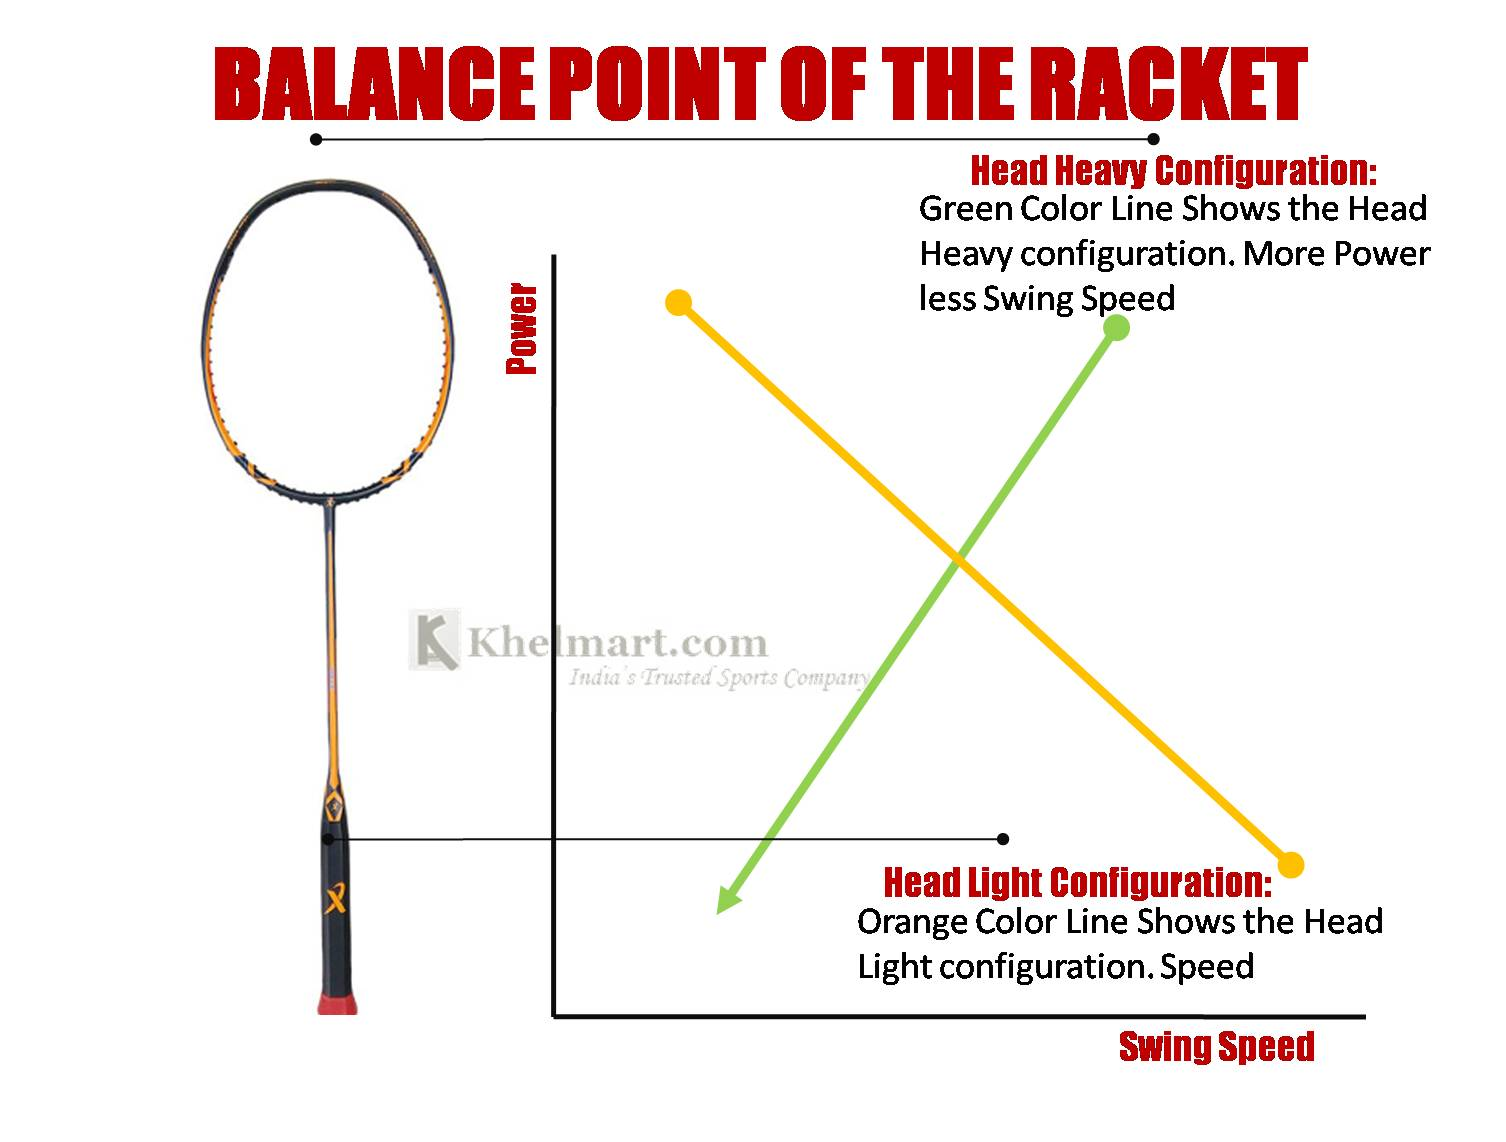 Balance_Point_Badminton_racket_Khelmart.jpg